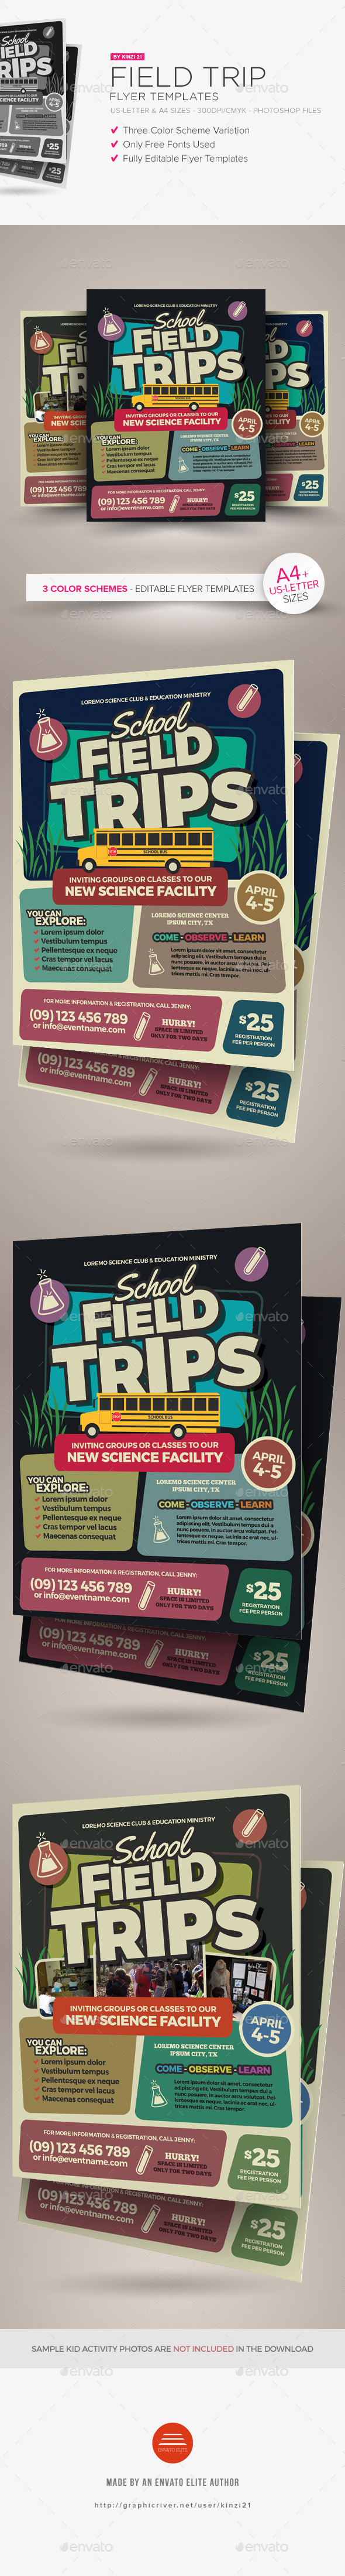 Field Trip Flyer Templates - Miscellaneous Events